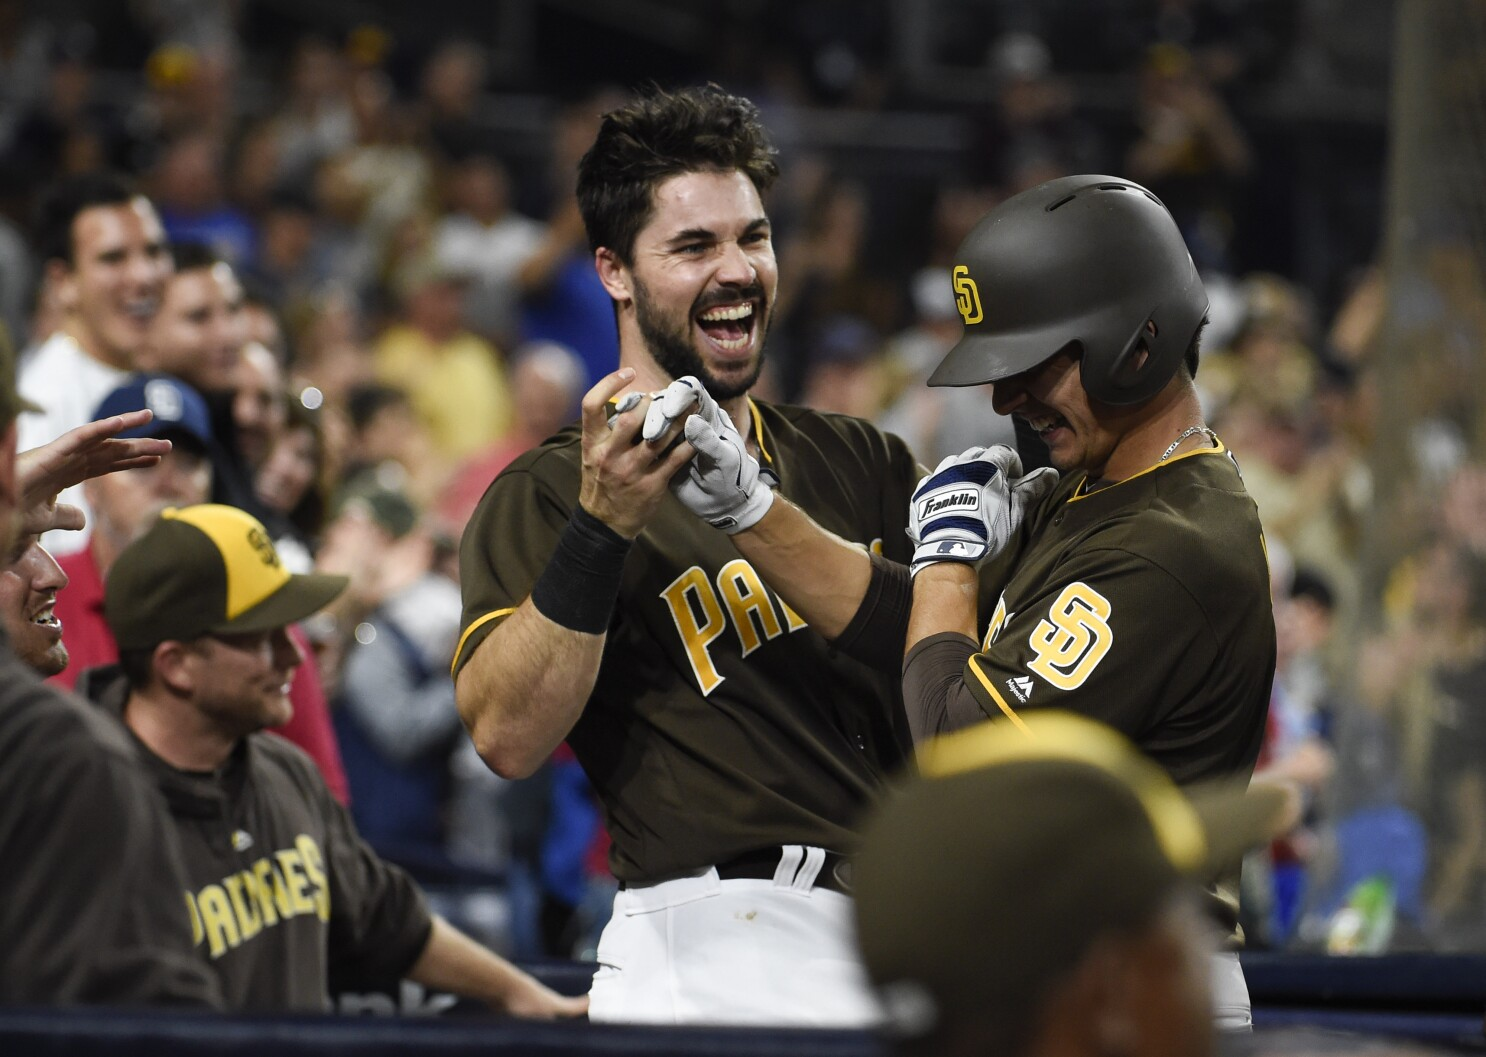 Column: Padres' results, not uniforms, will matter most in 2020